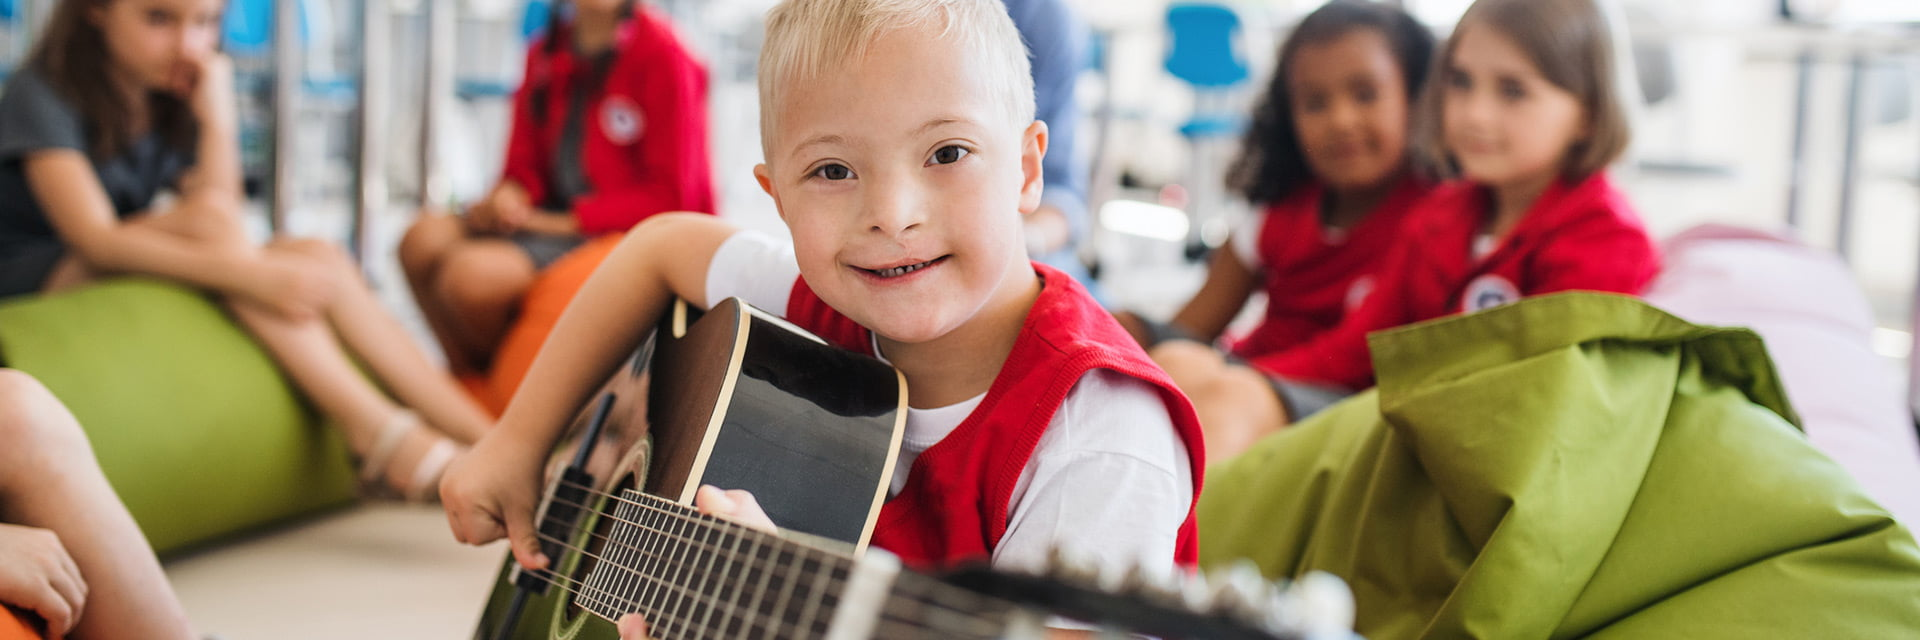 Young boy with a disability playing a guitar